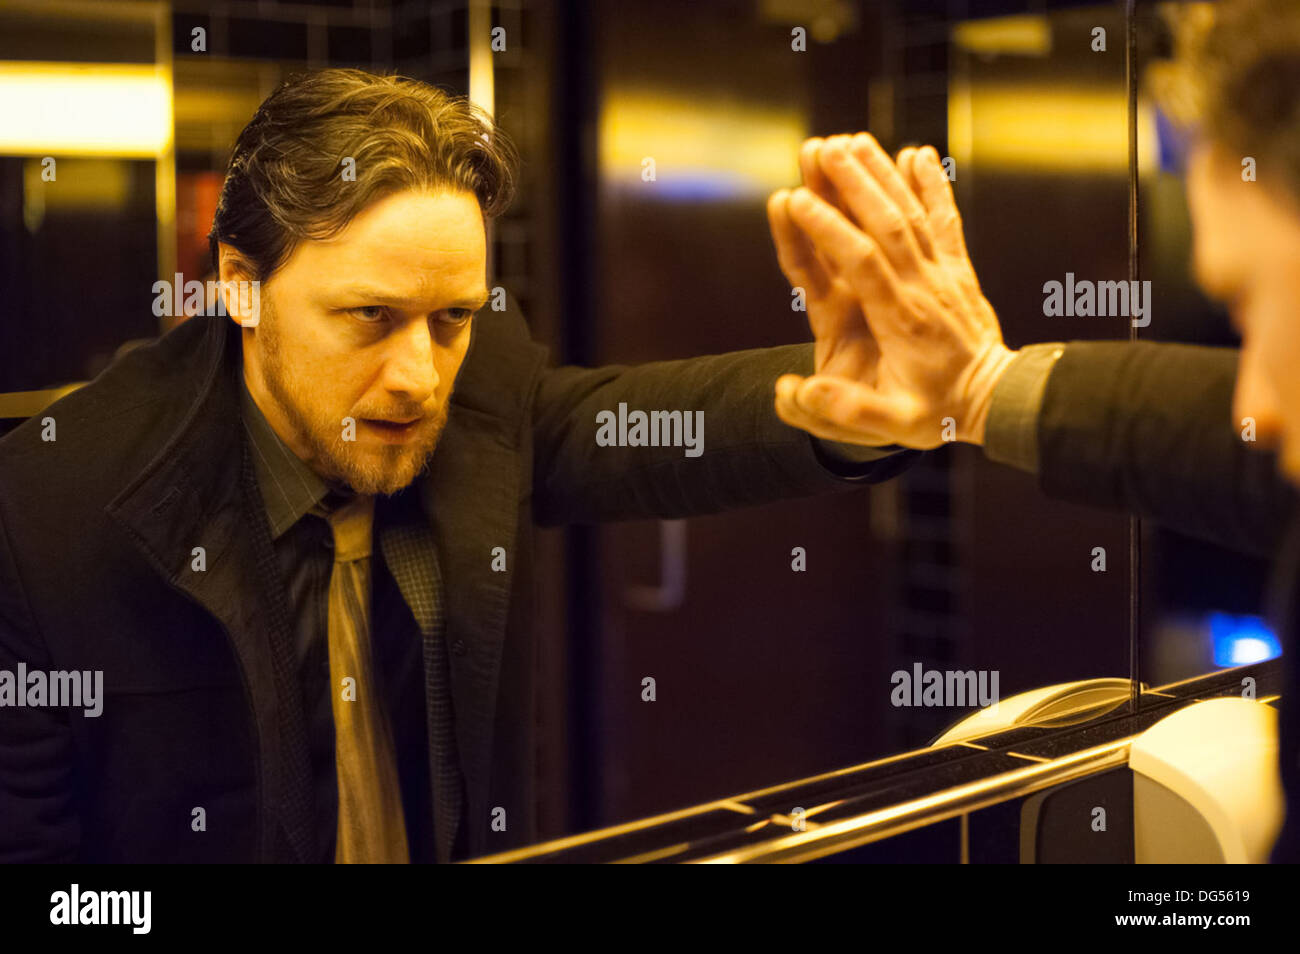 FILTH 2013) JAMES MCAVOY JON S BAIRD DIR) MOVIESTORE COLLECTION LTD - Stock Image